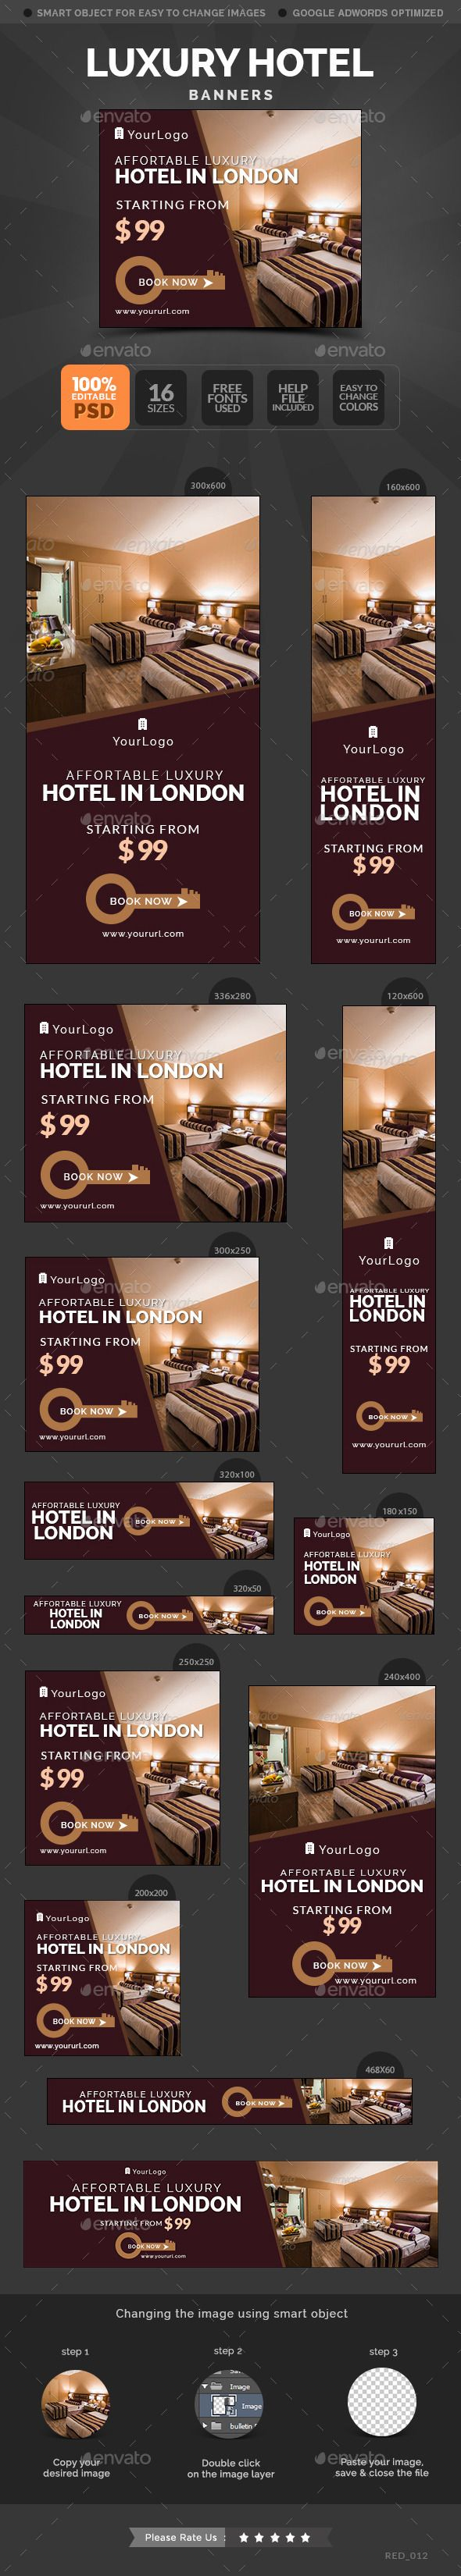 Luxury Hotel Banners - Banners & Ads Web Template PSD. Download here: http://graphicriver.net/item/luxury-hotel-banners/10654582?s_rank=1796&ref=yinkira